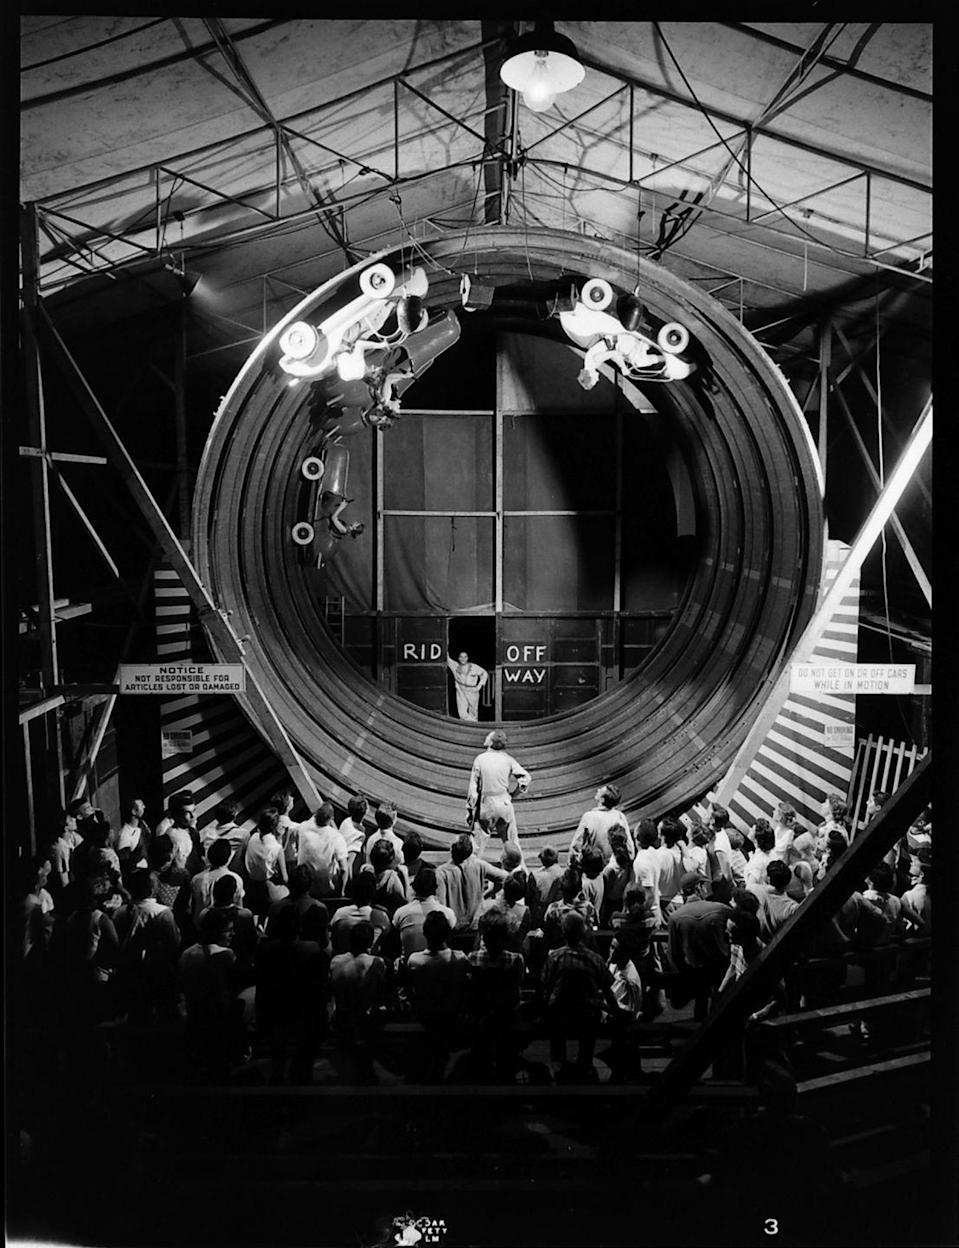 <p>You can see video of this ride in action: Not only did the cars roll around inside the looping track, the entire drum rotated in a circle, sending riders on a 30 mph spin.</p>